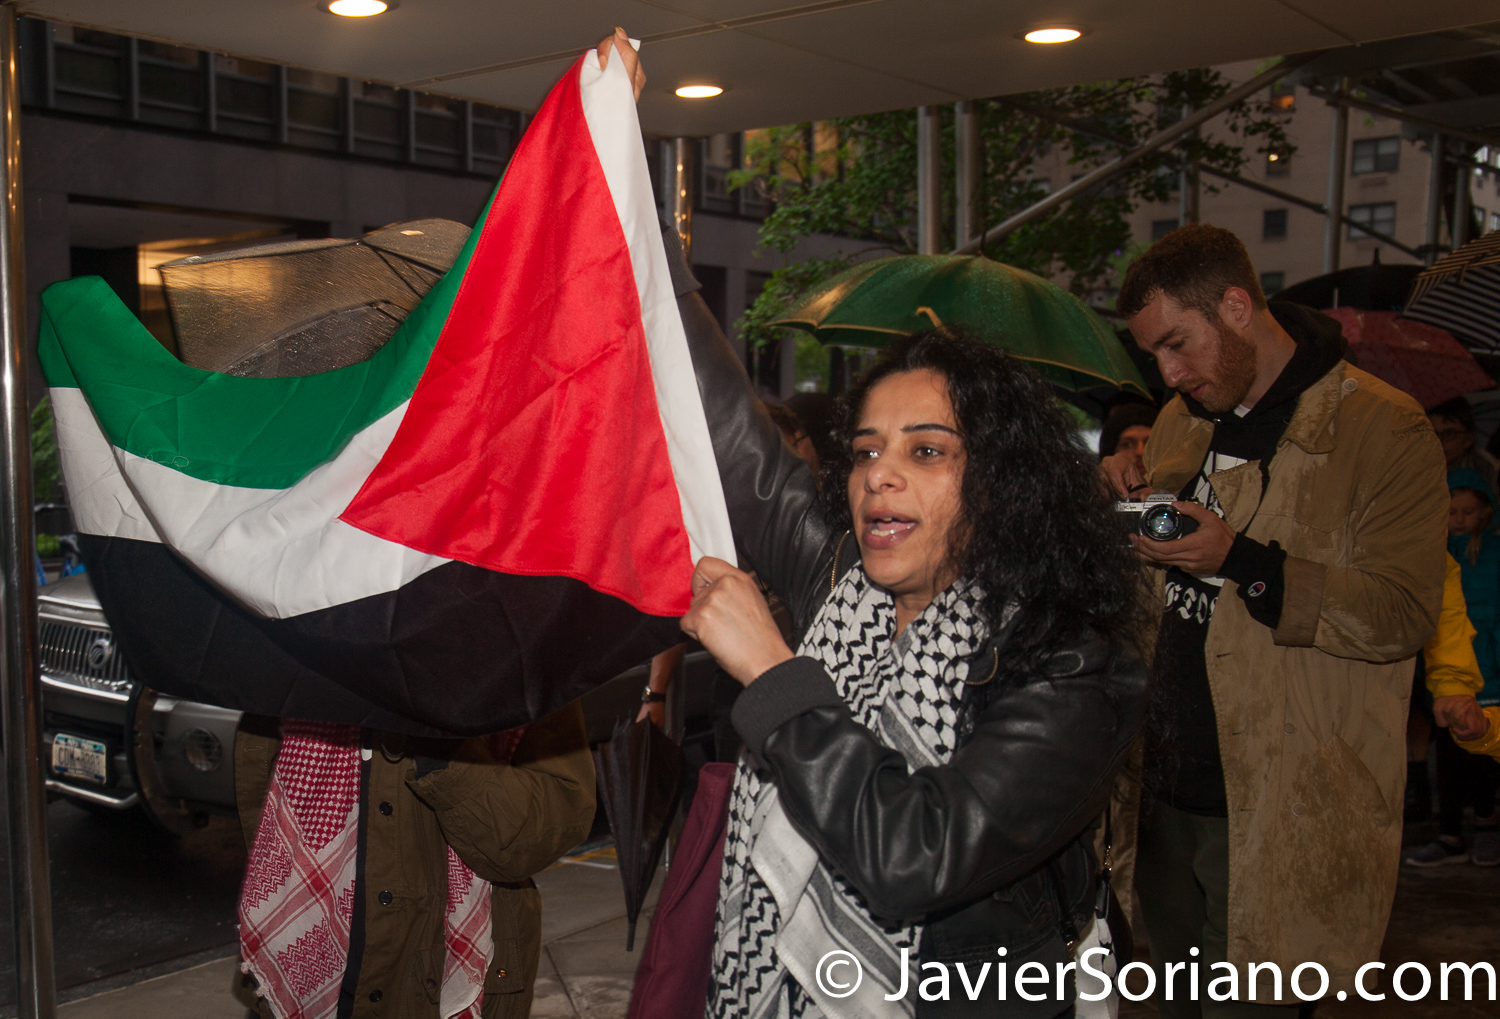 """5/16/2018. Manhattan, New York City - New Yorkers support Palestine. """"Activists marching with the Palestinian flag"""" Photo by Javier Soriano/www.JavierSoriano.com"""